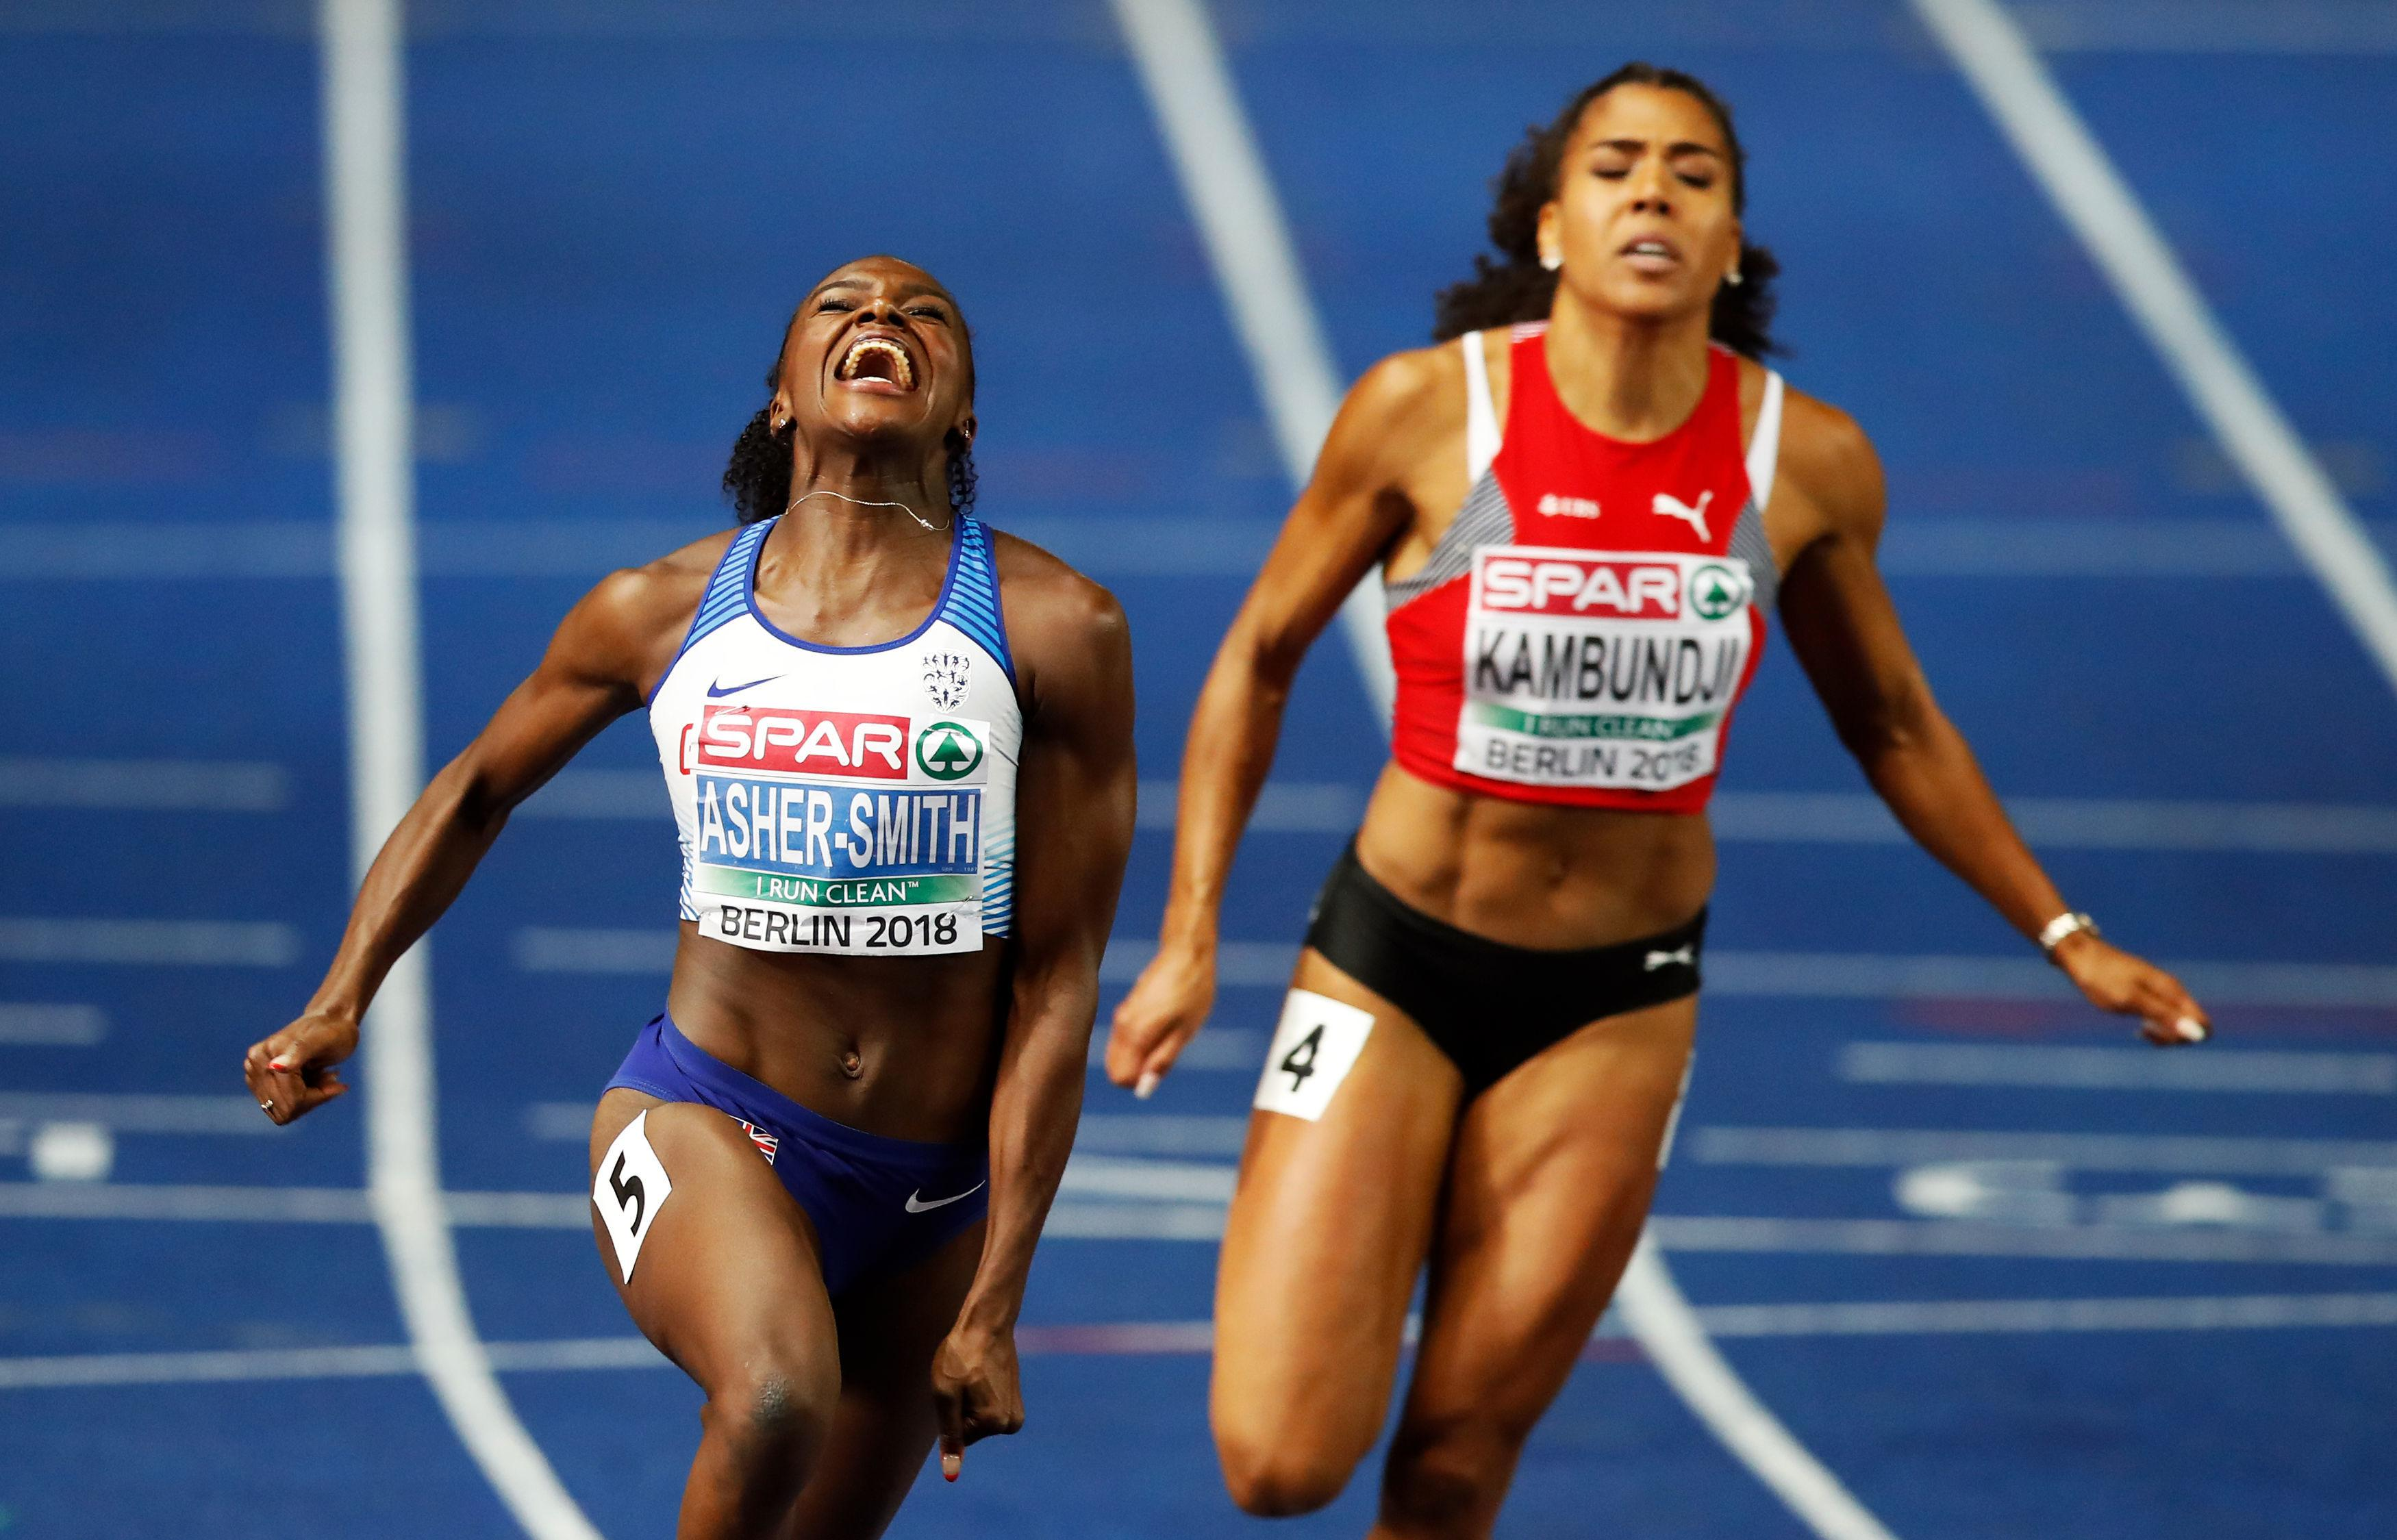 Dina Asher-Smith crosses the line in a British record time of 10.85sec to clinch European gold